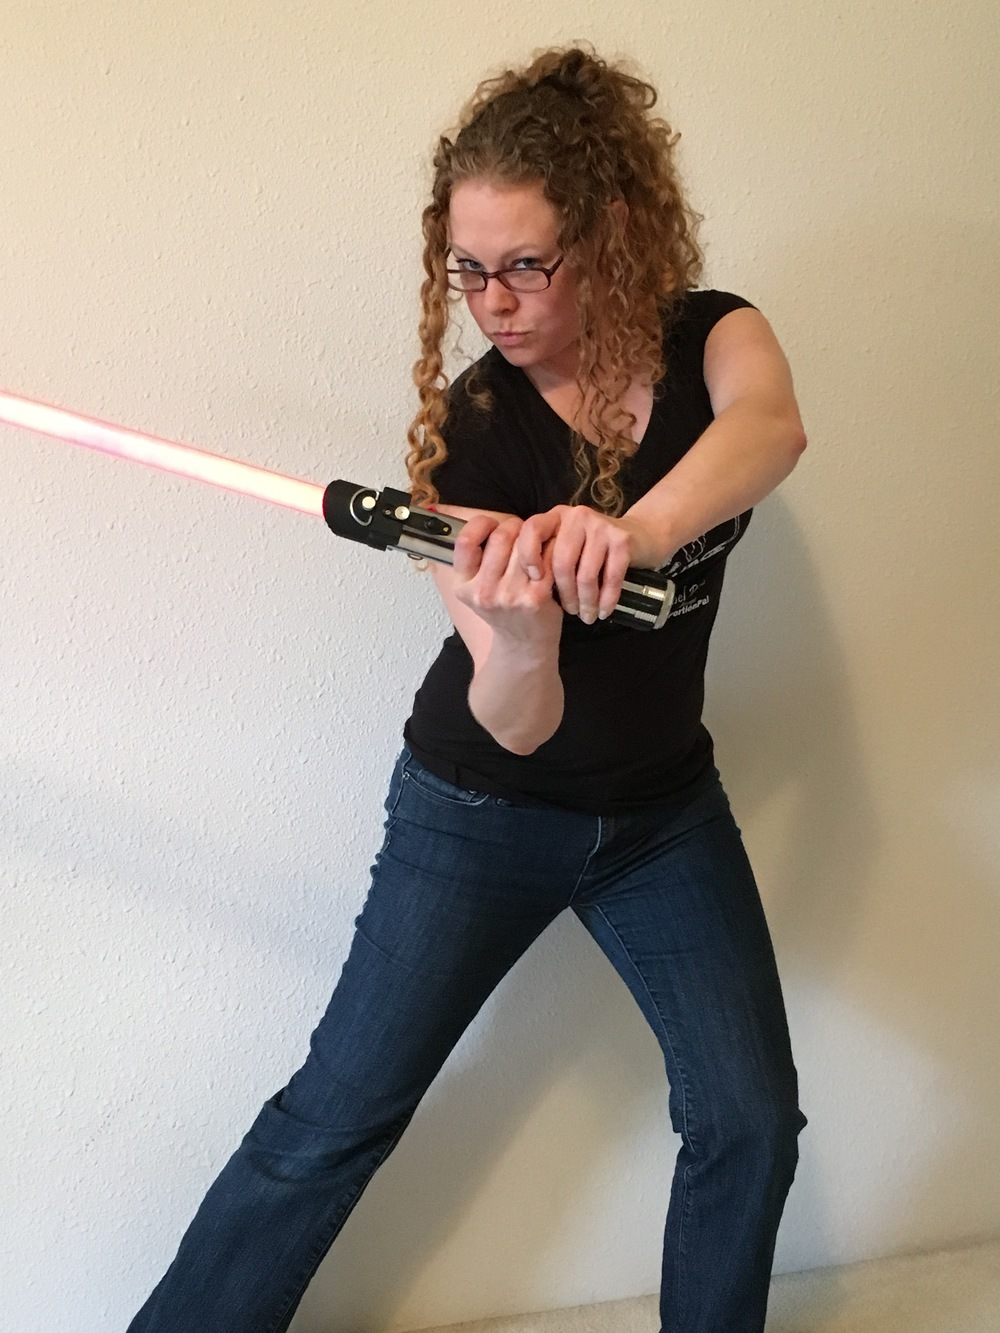 Brittany, productivity, computer CONSULTANT, and ADHD Coach, is having fun with a  light saber. She wants to cut down your  distractions and help you work and live better.